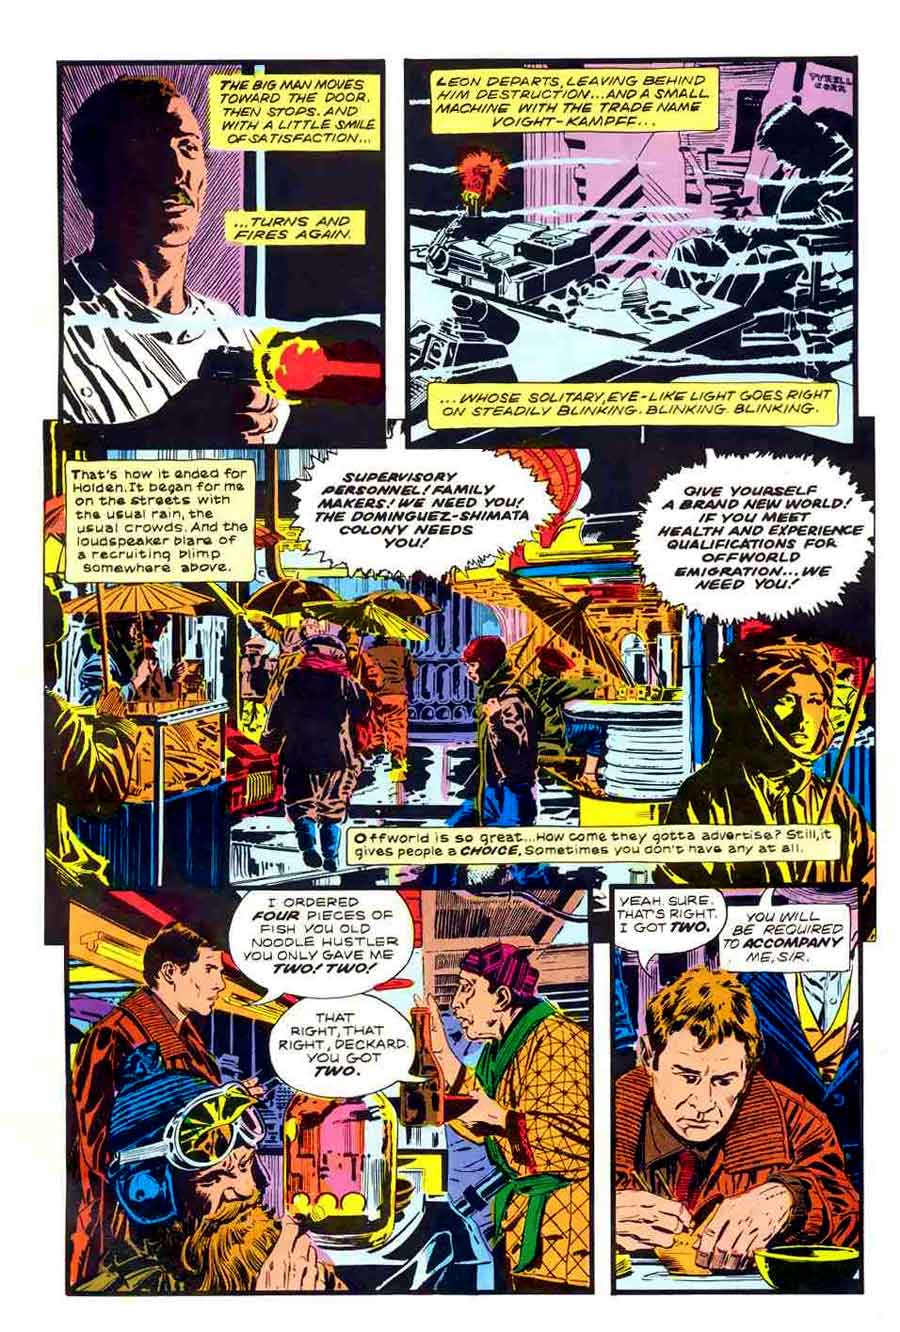 Marvel Super Special #22 / Blade Runner - Al Williamson page art